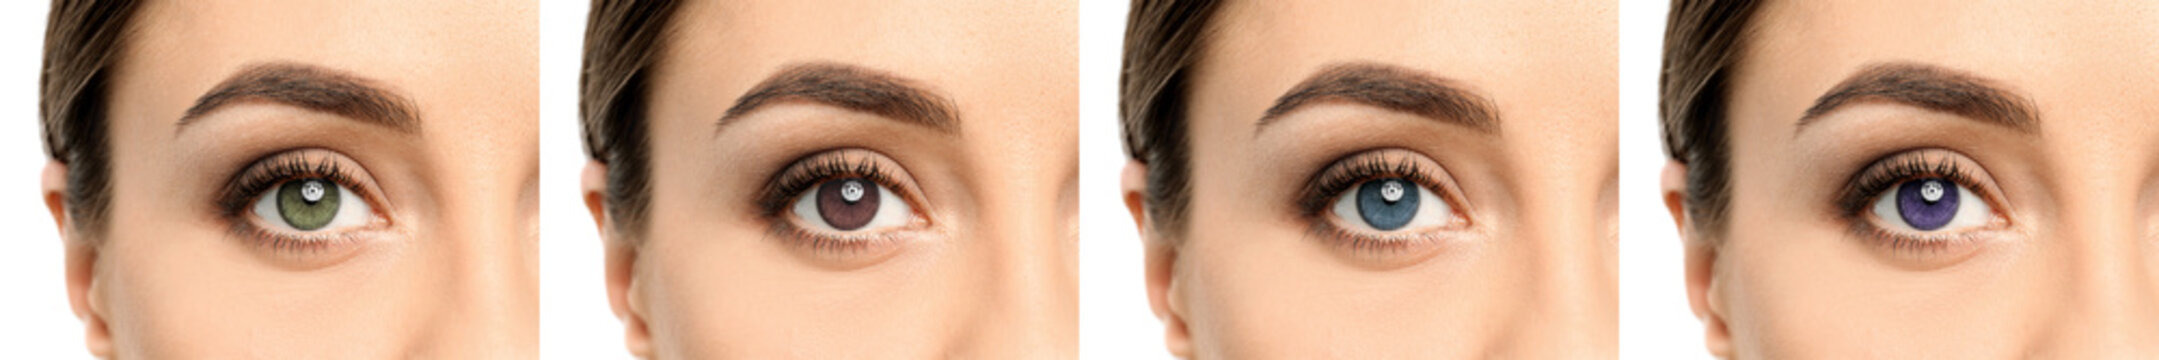 Collage with photos of woman wearing different color contact lenses, closeup. Banner design